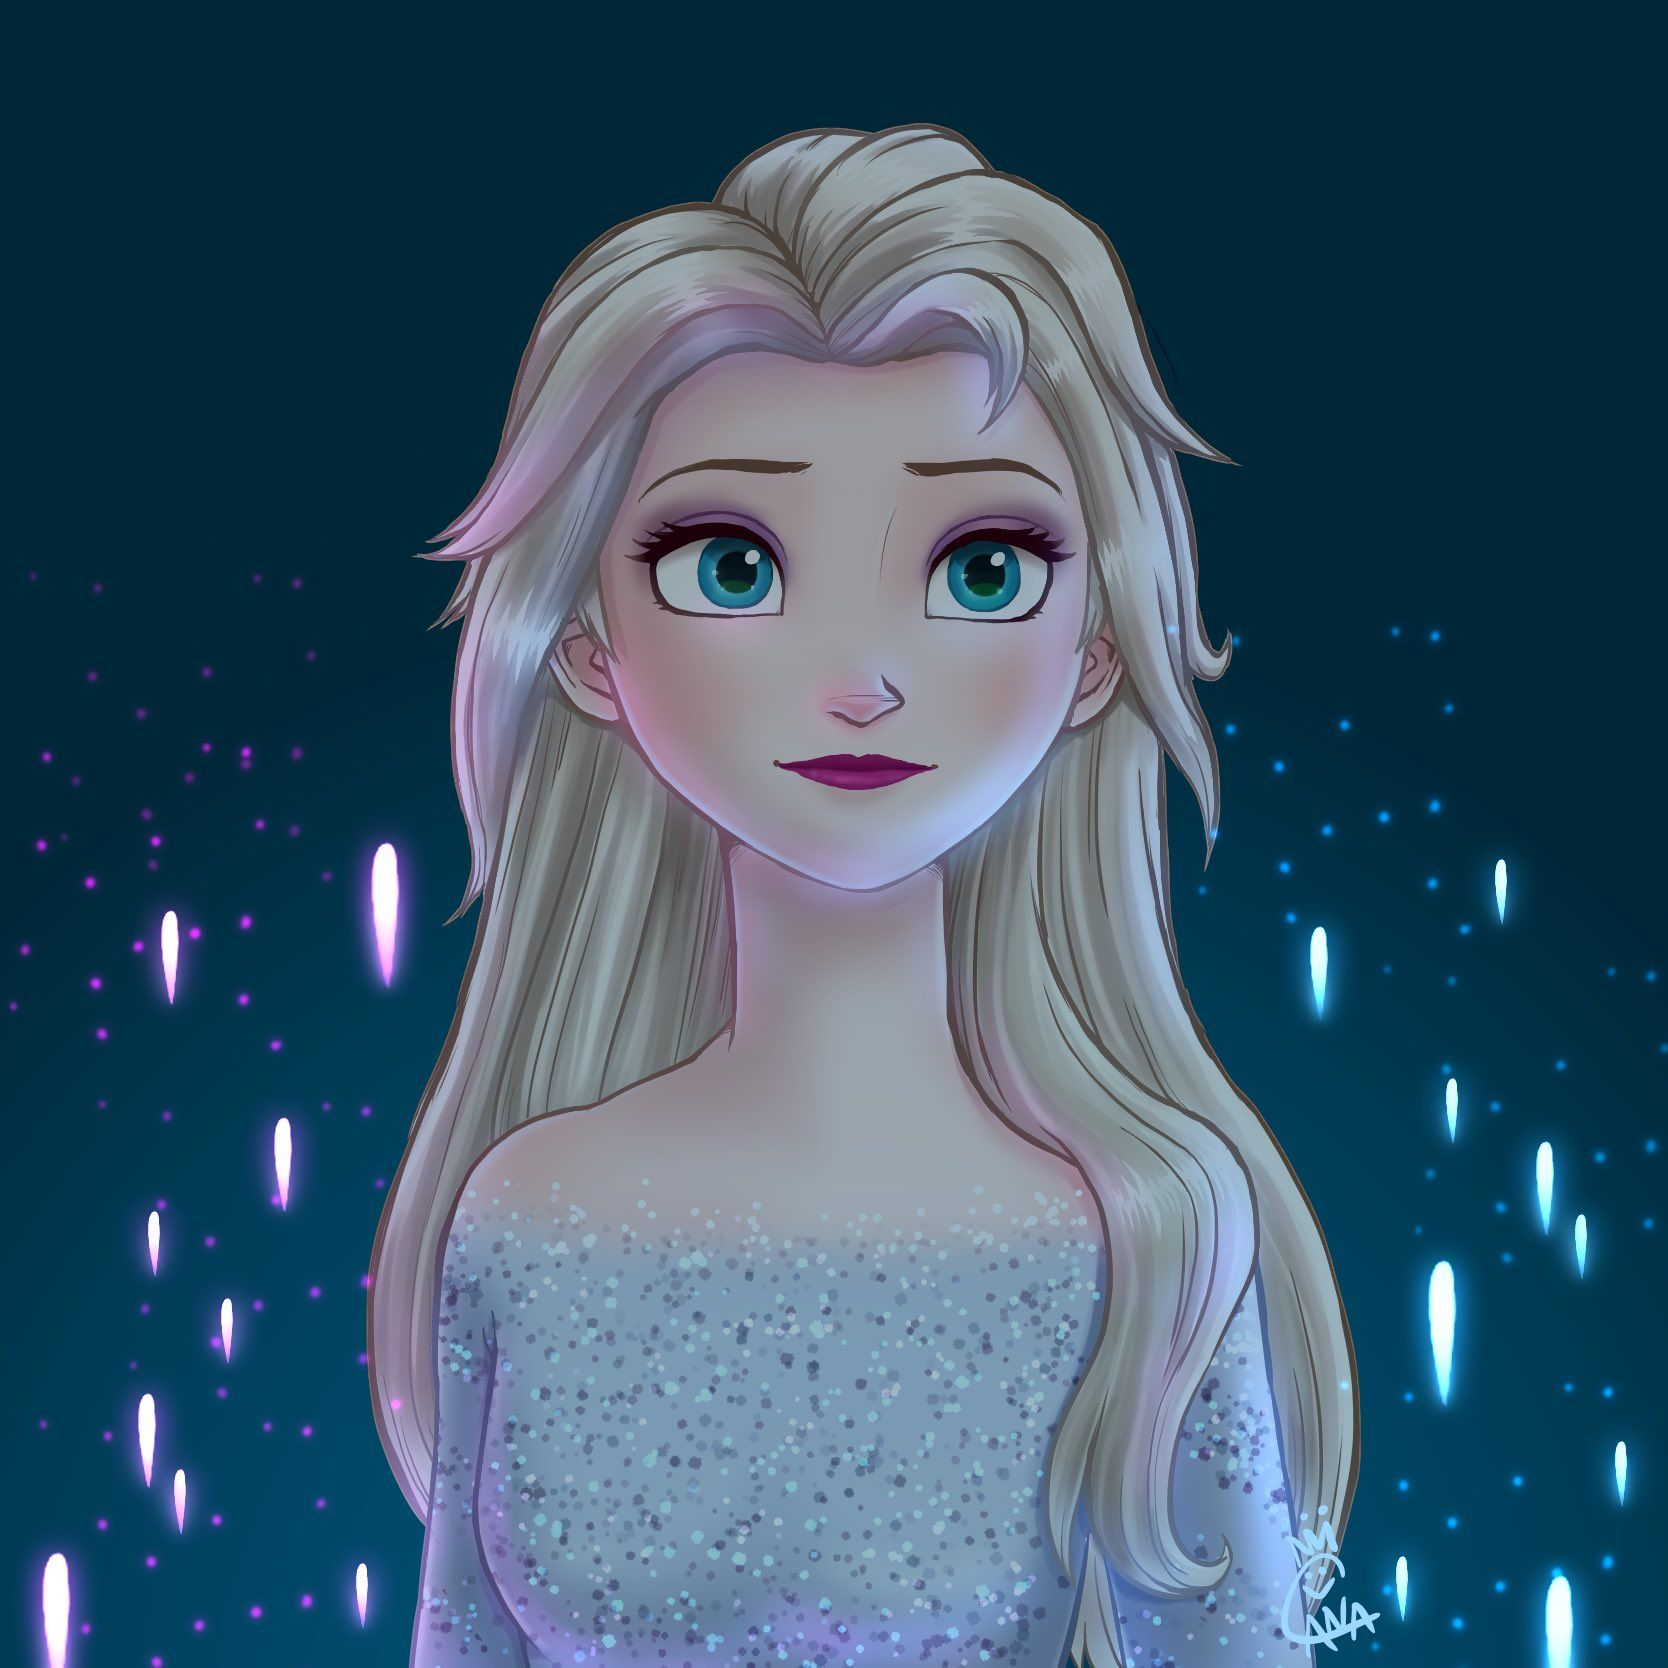 Pin By Selen On Idina Menzel Frozen Art Disney Princess Frozen Disney Princess Wallpaper